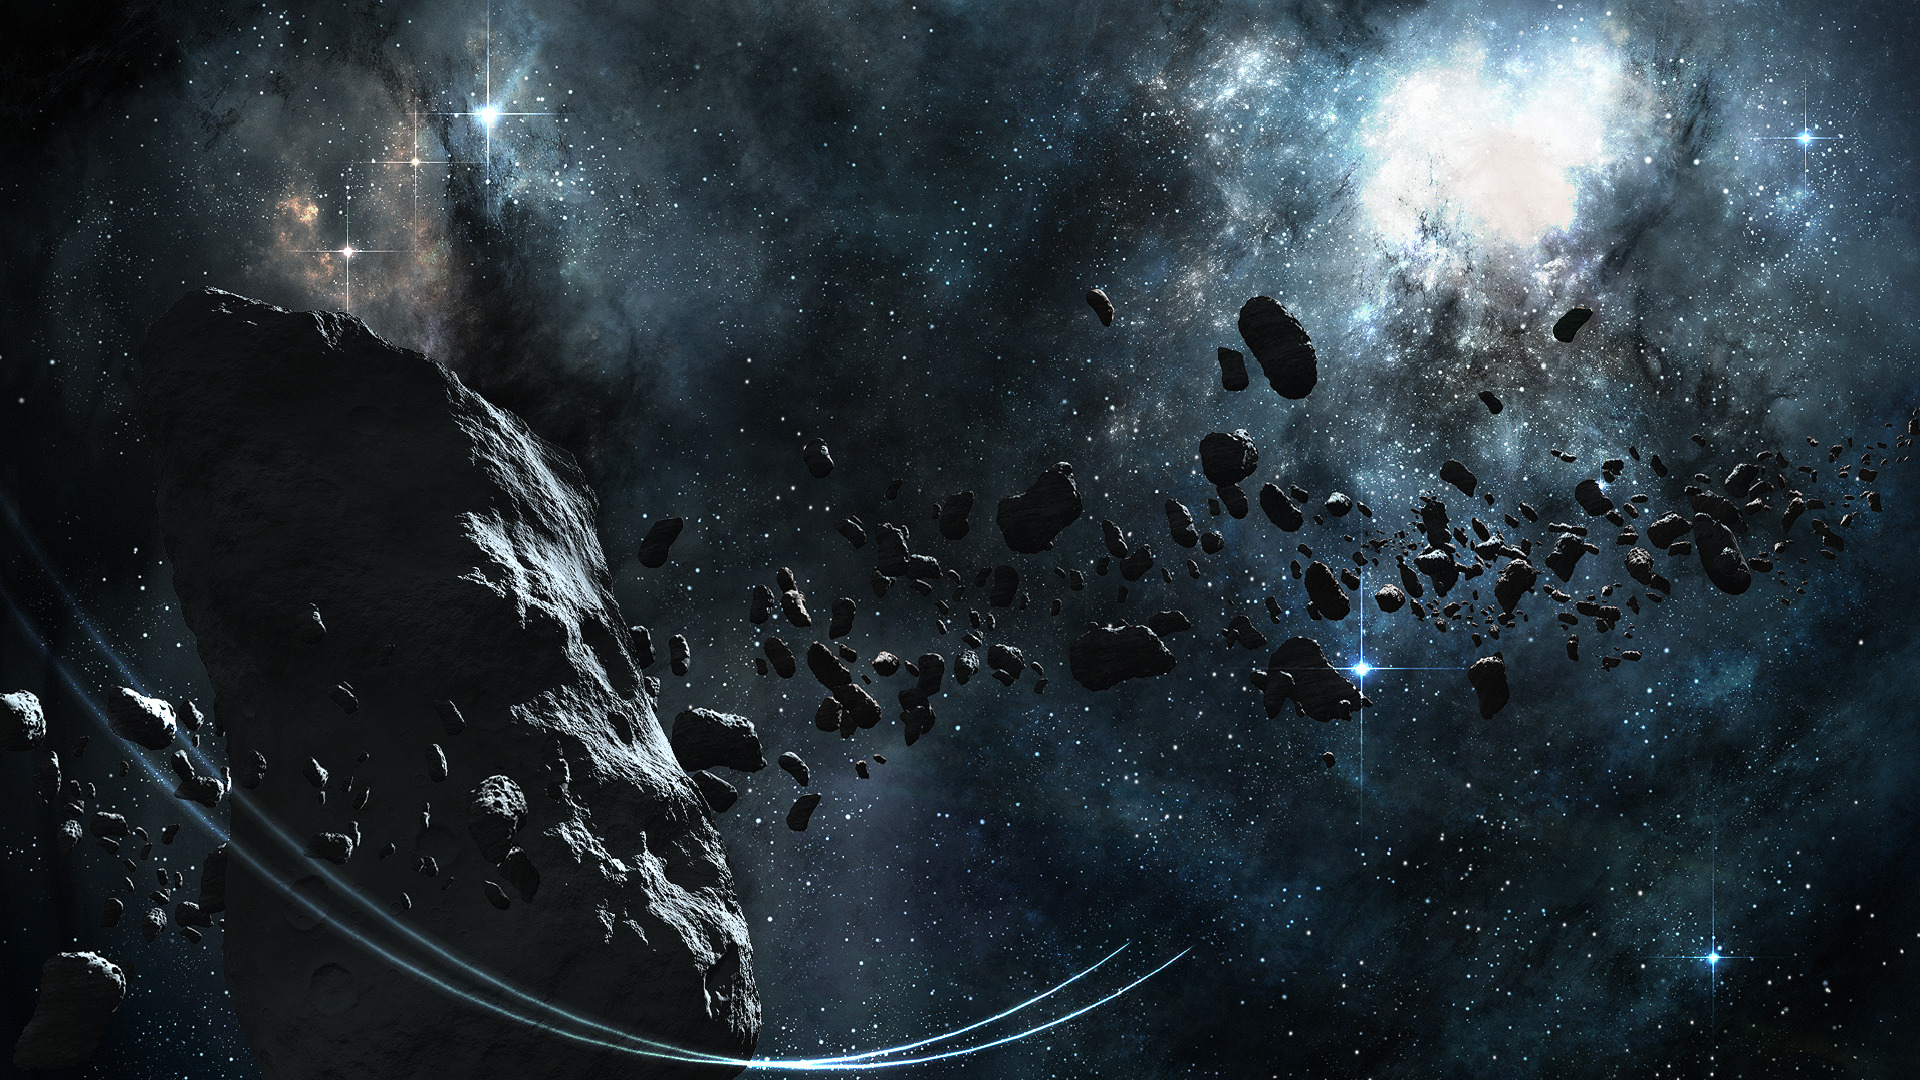 3d Asteroid Wallpaper Space Asteroid Digital Art Space Art Wallpapers Hd